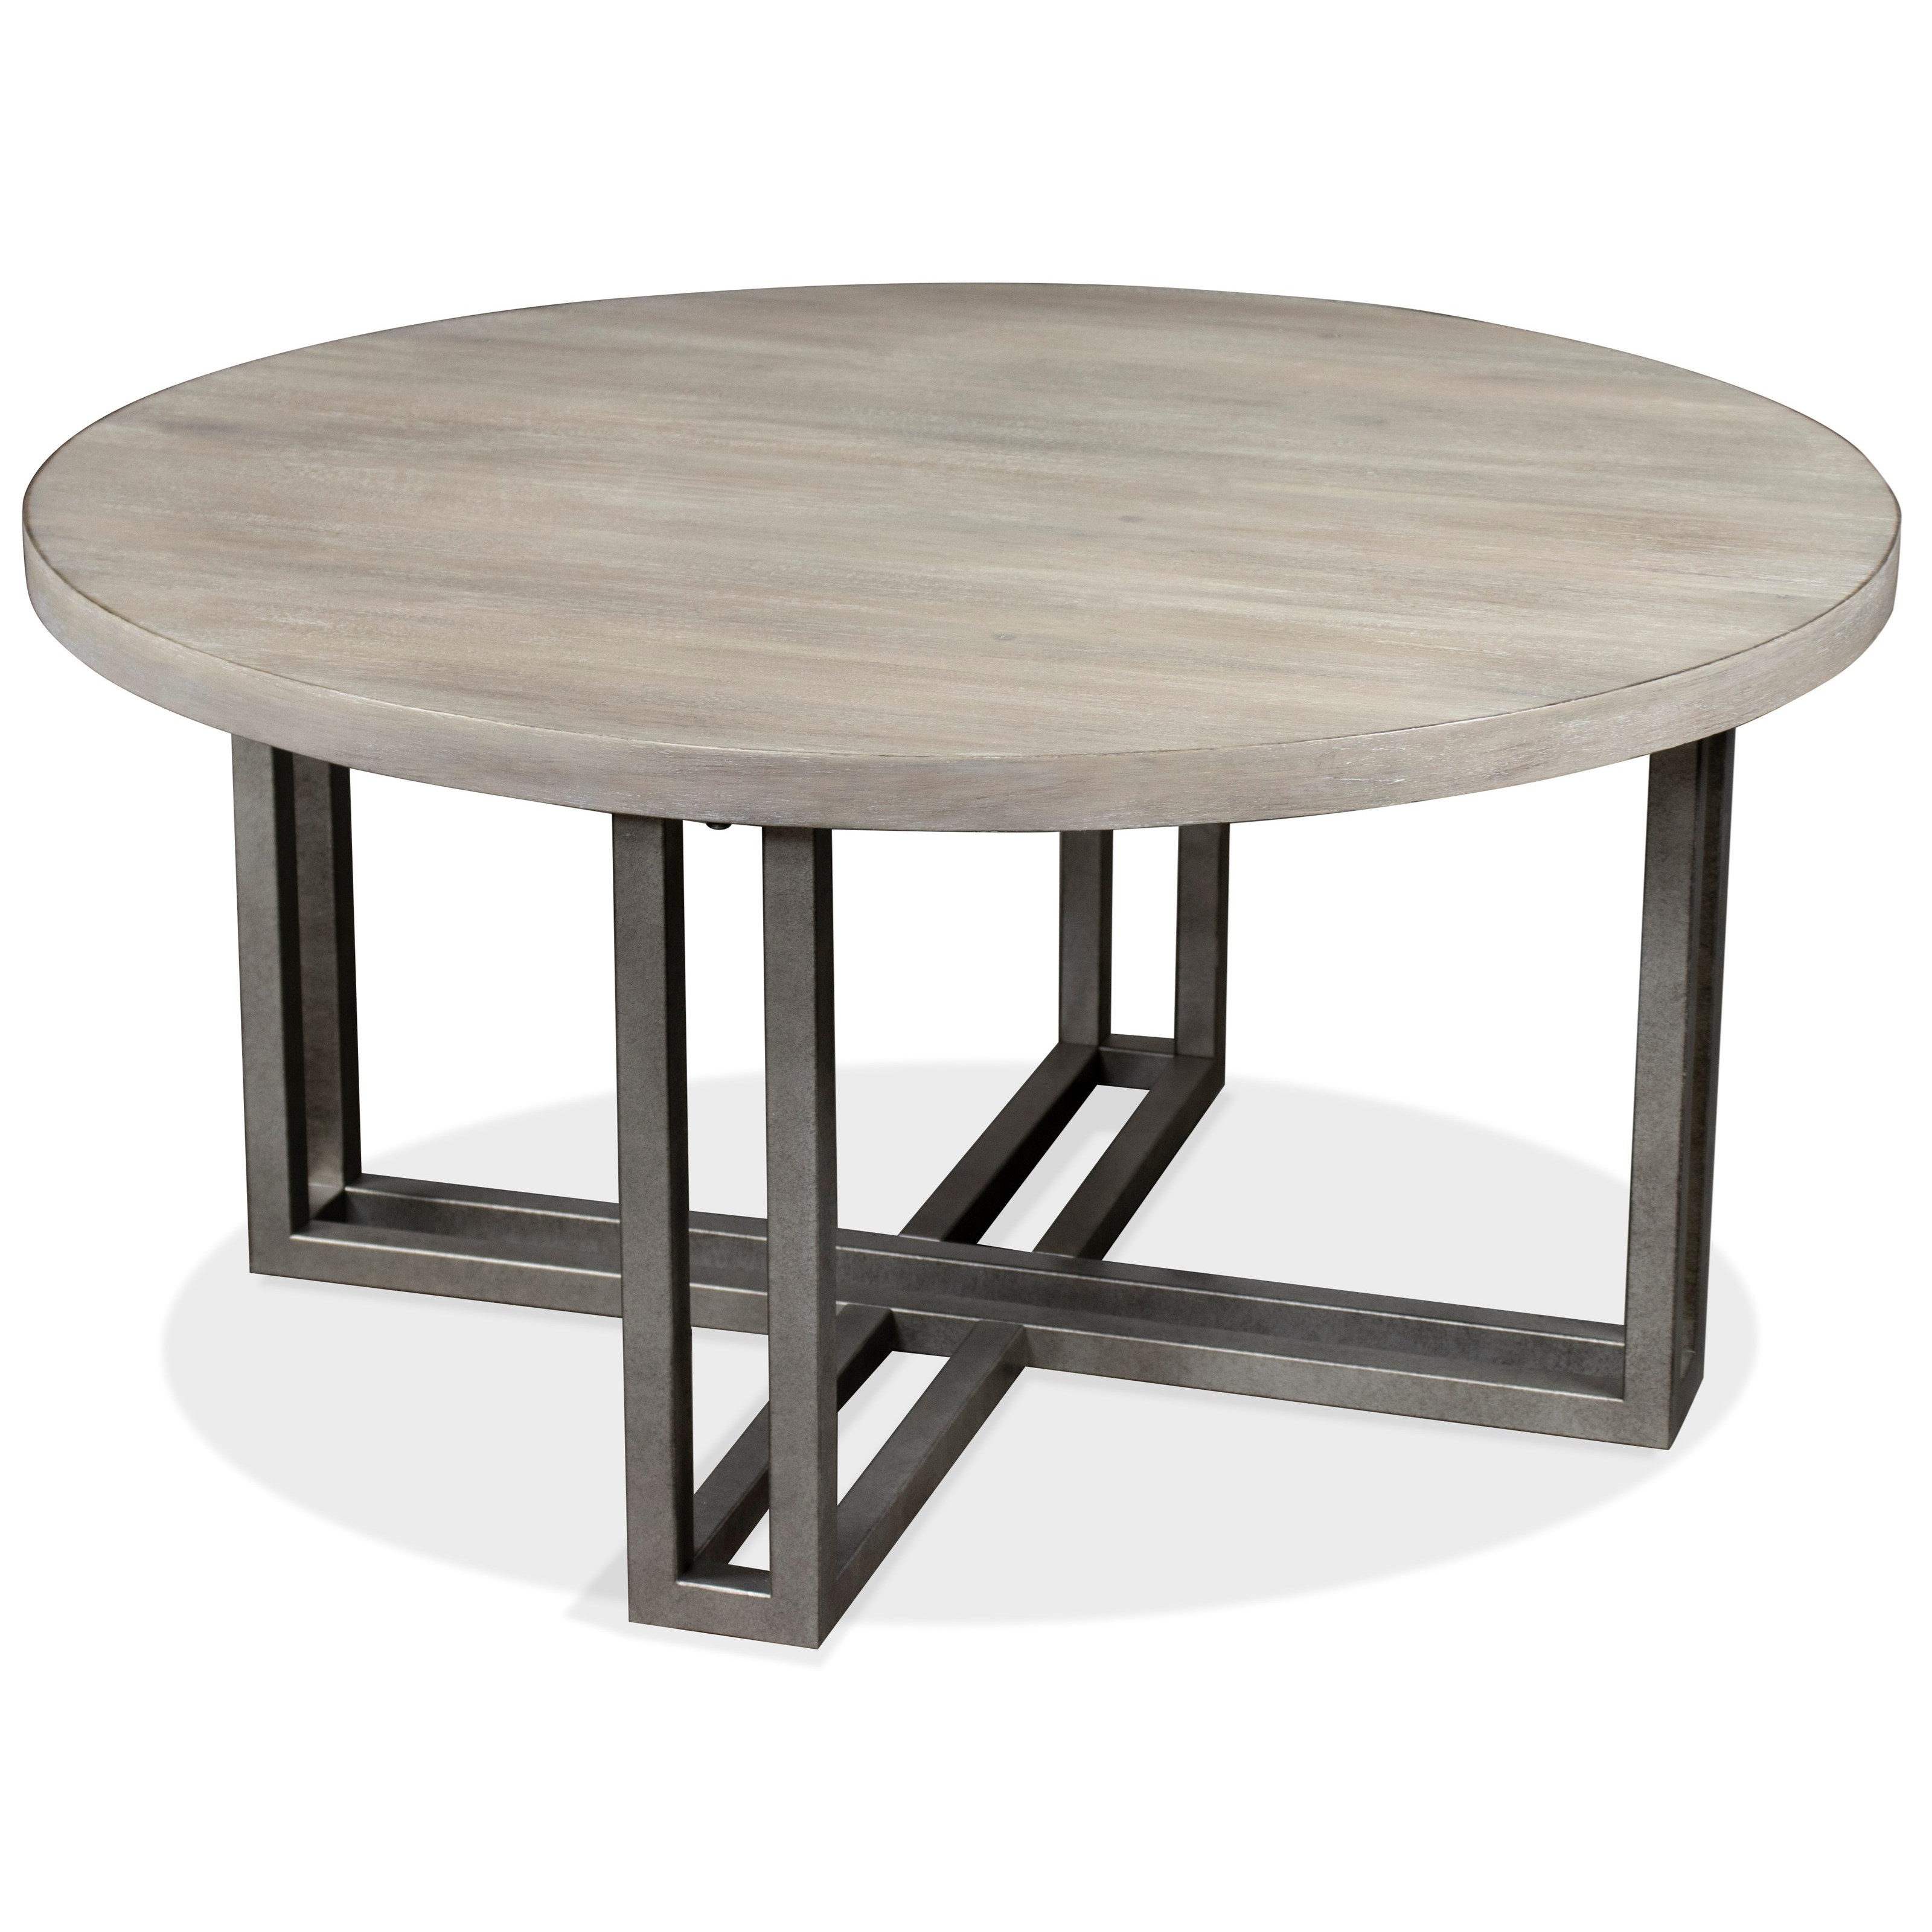 Adelyn Round Cocktail Table by Riverside Furniture at Darvin Furniture